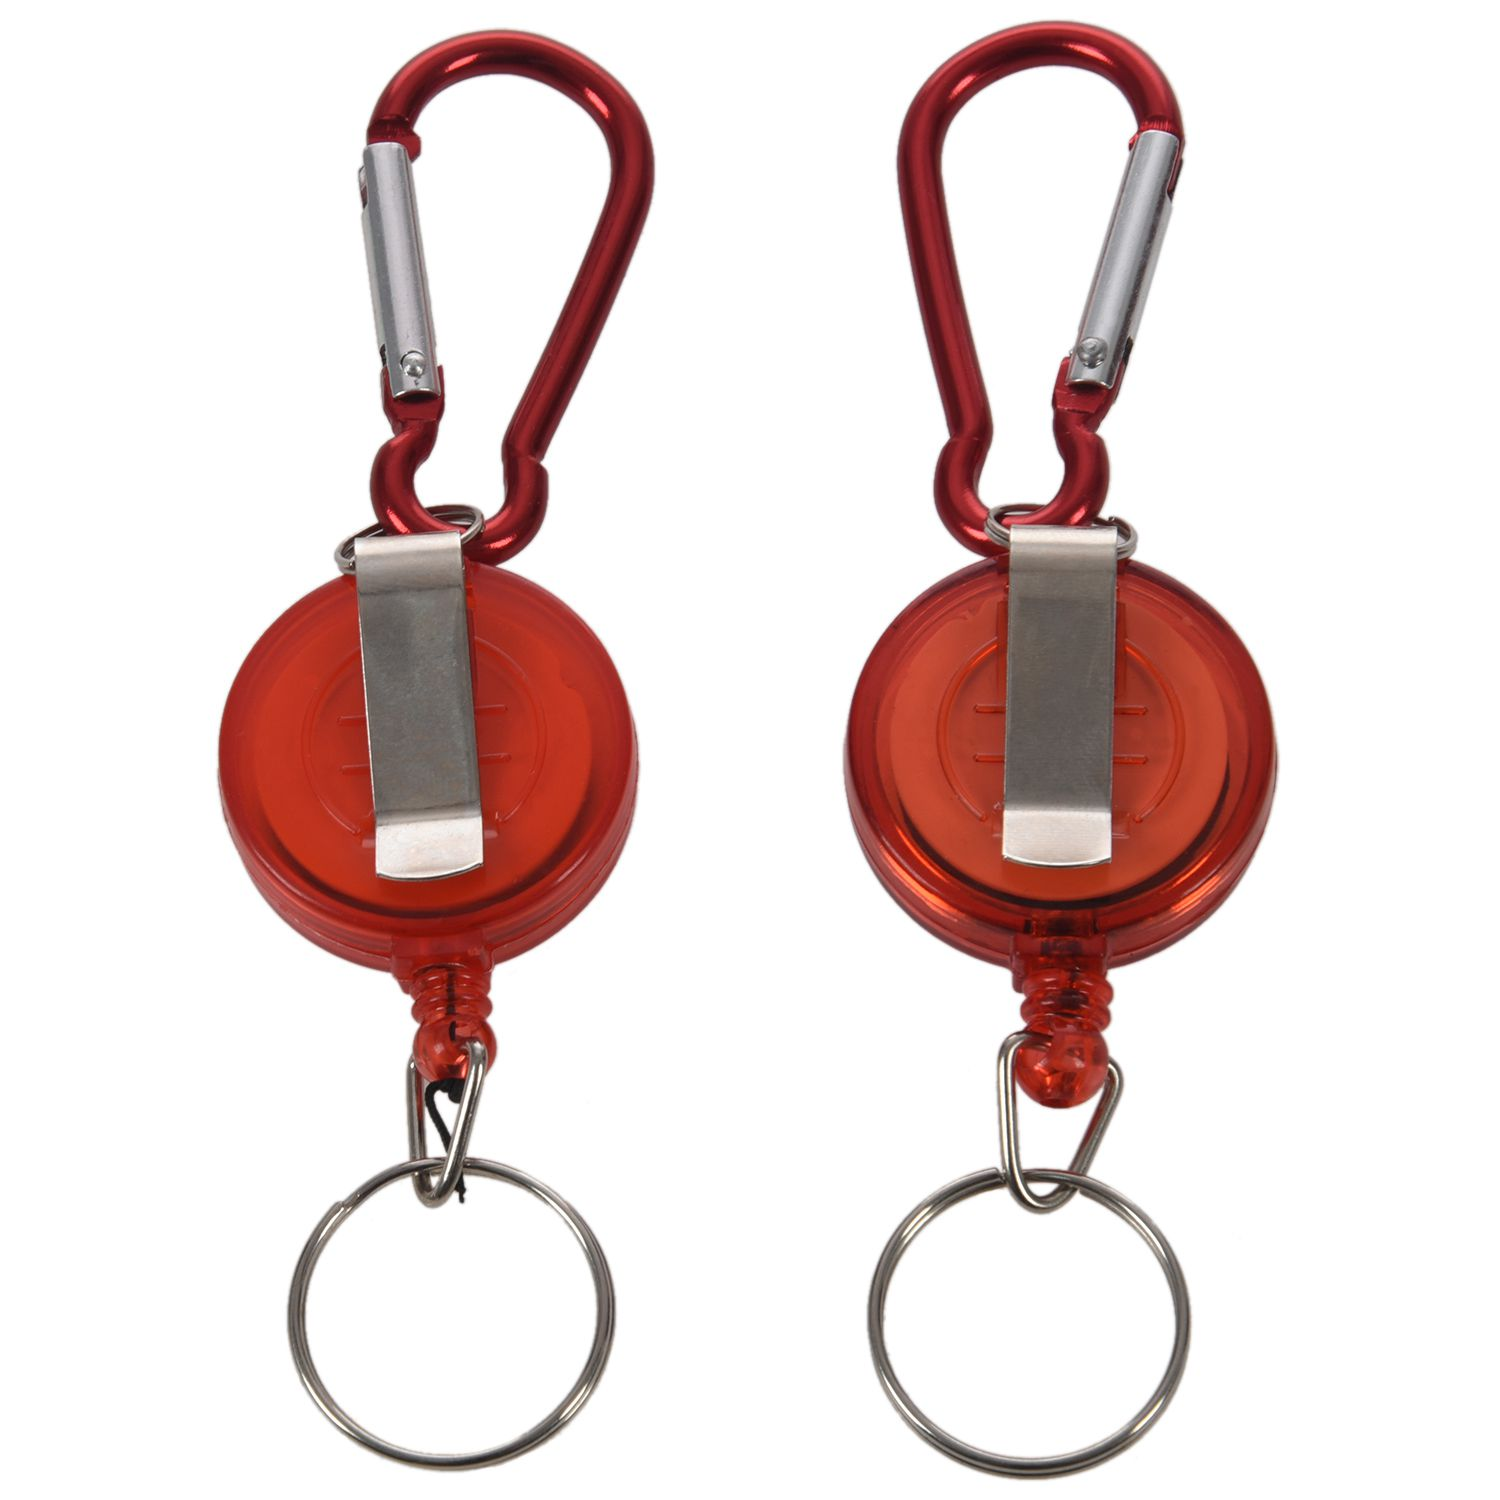 2 PCS BADGE REEL - RETRACTABLE RECOIL YOYO SKI PASS ID CARD HOLDER KEY CHAIN